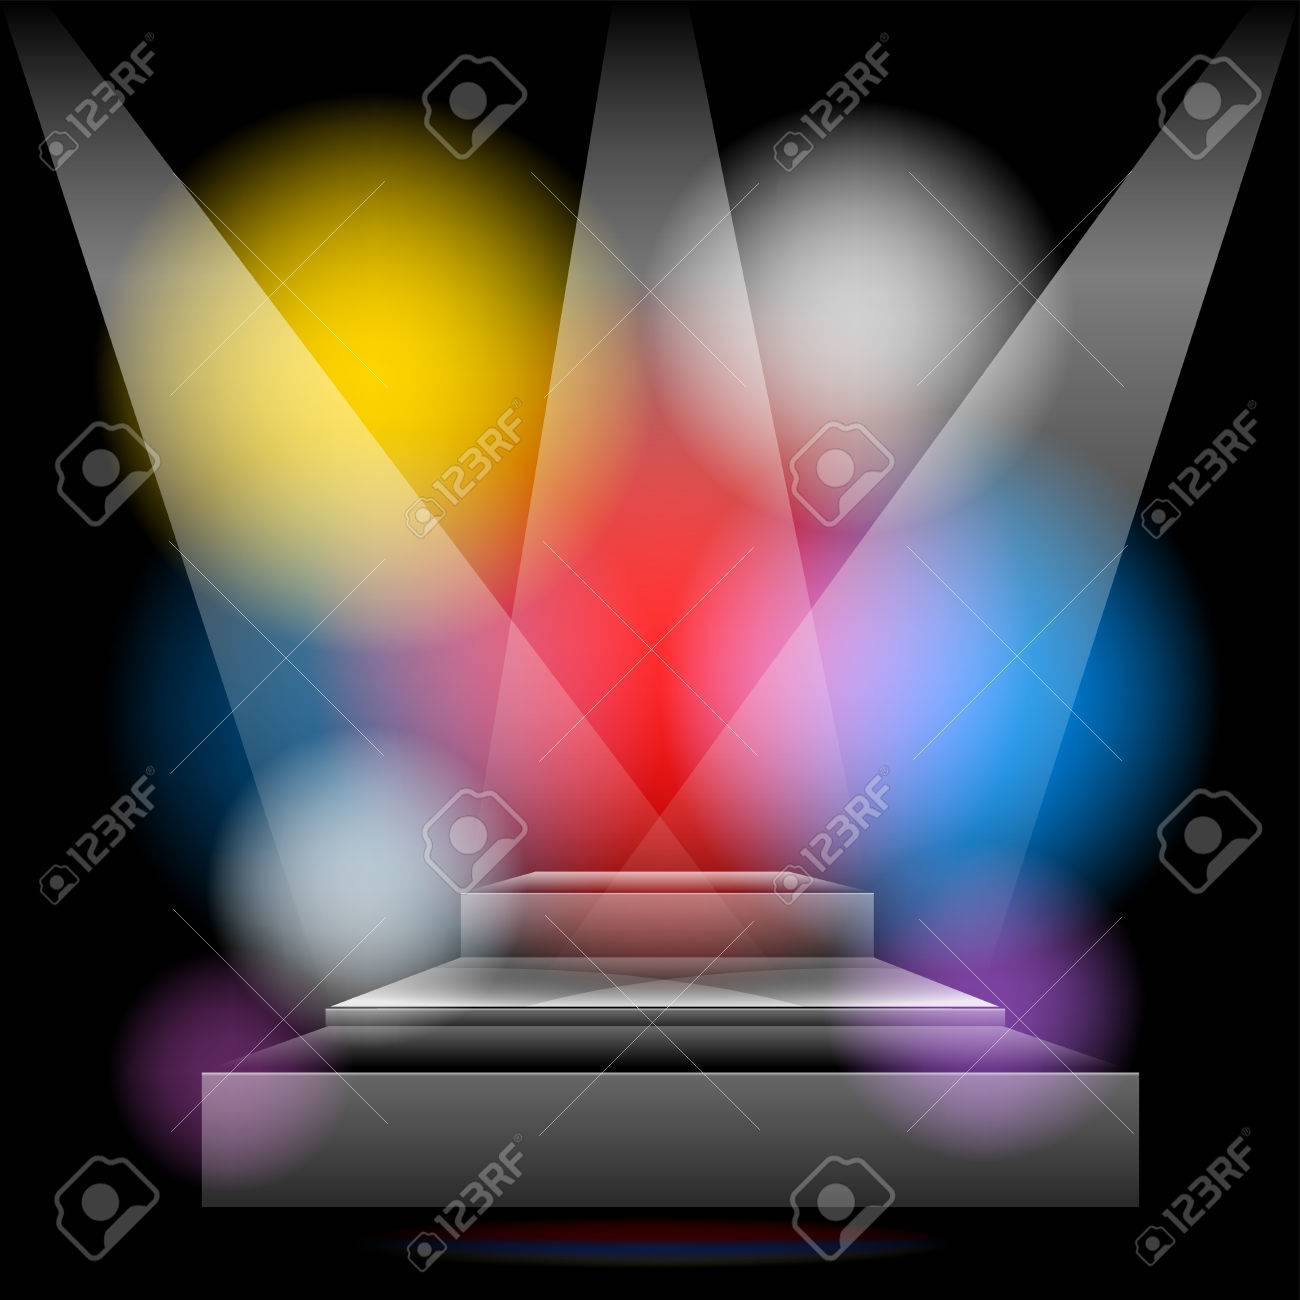 Podium brightly lit with colored lights Stock Vector - 23564861